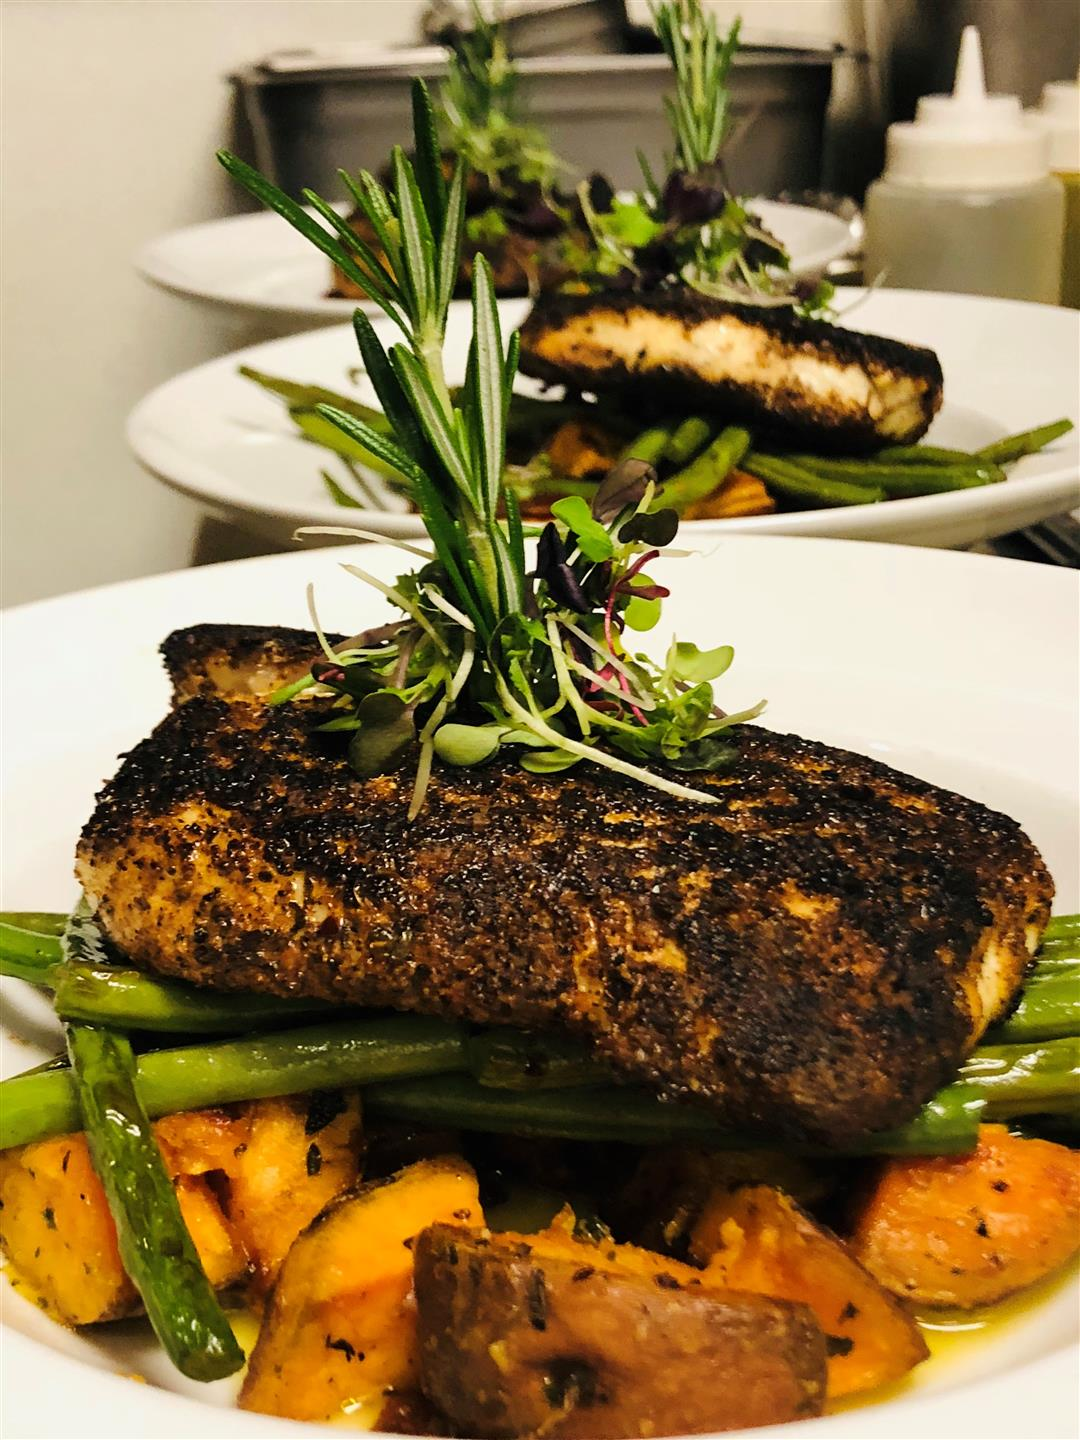 grilled fish on a bed of sweet potatoes and asparagus on a white plate